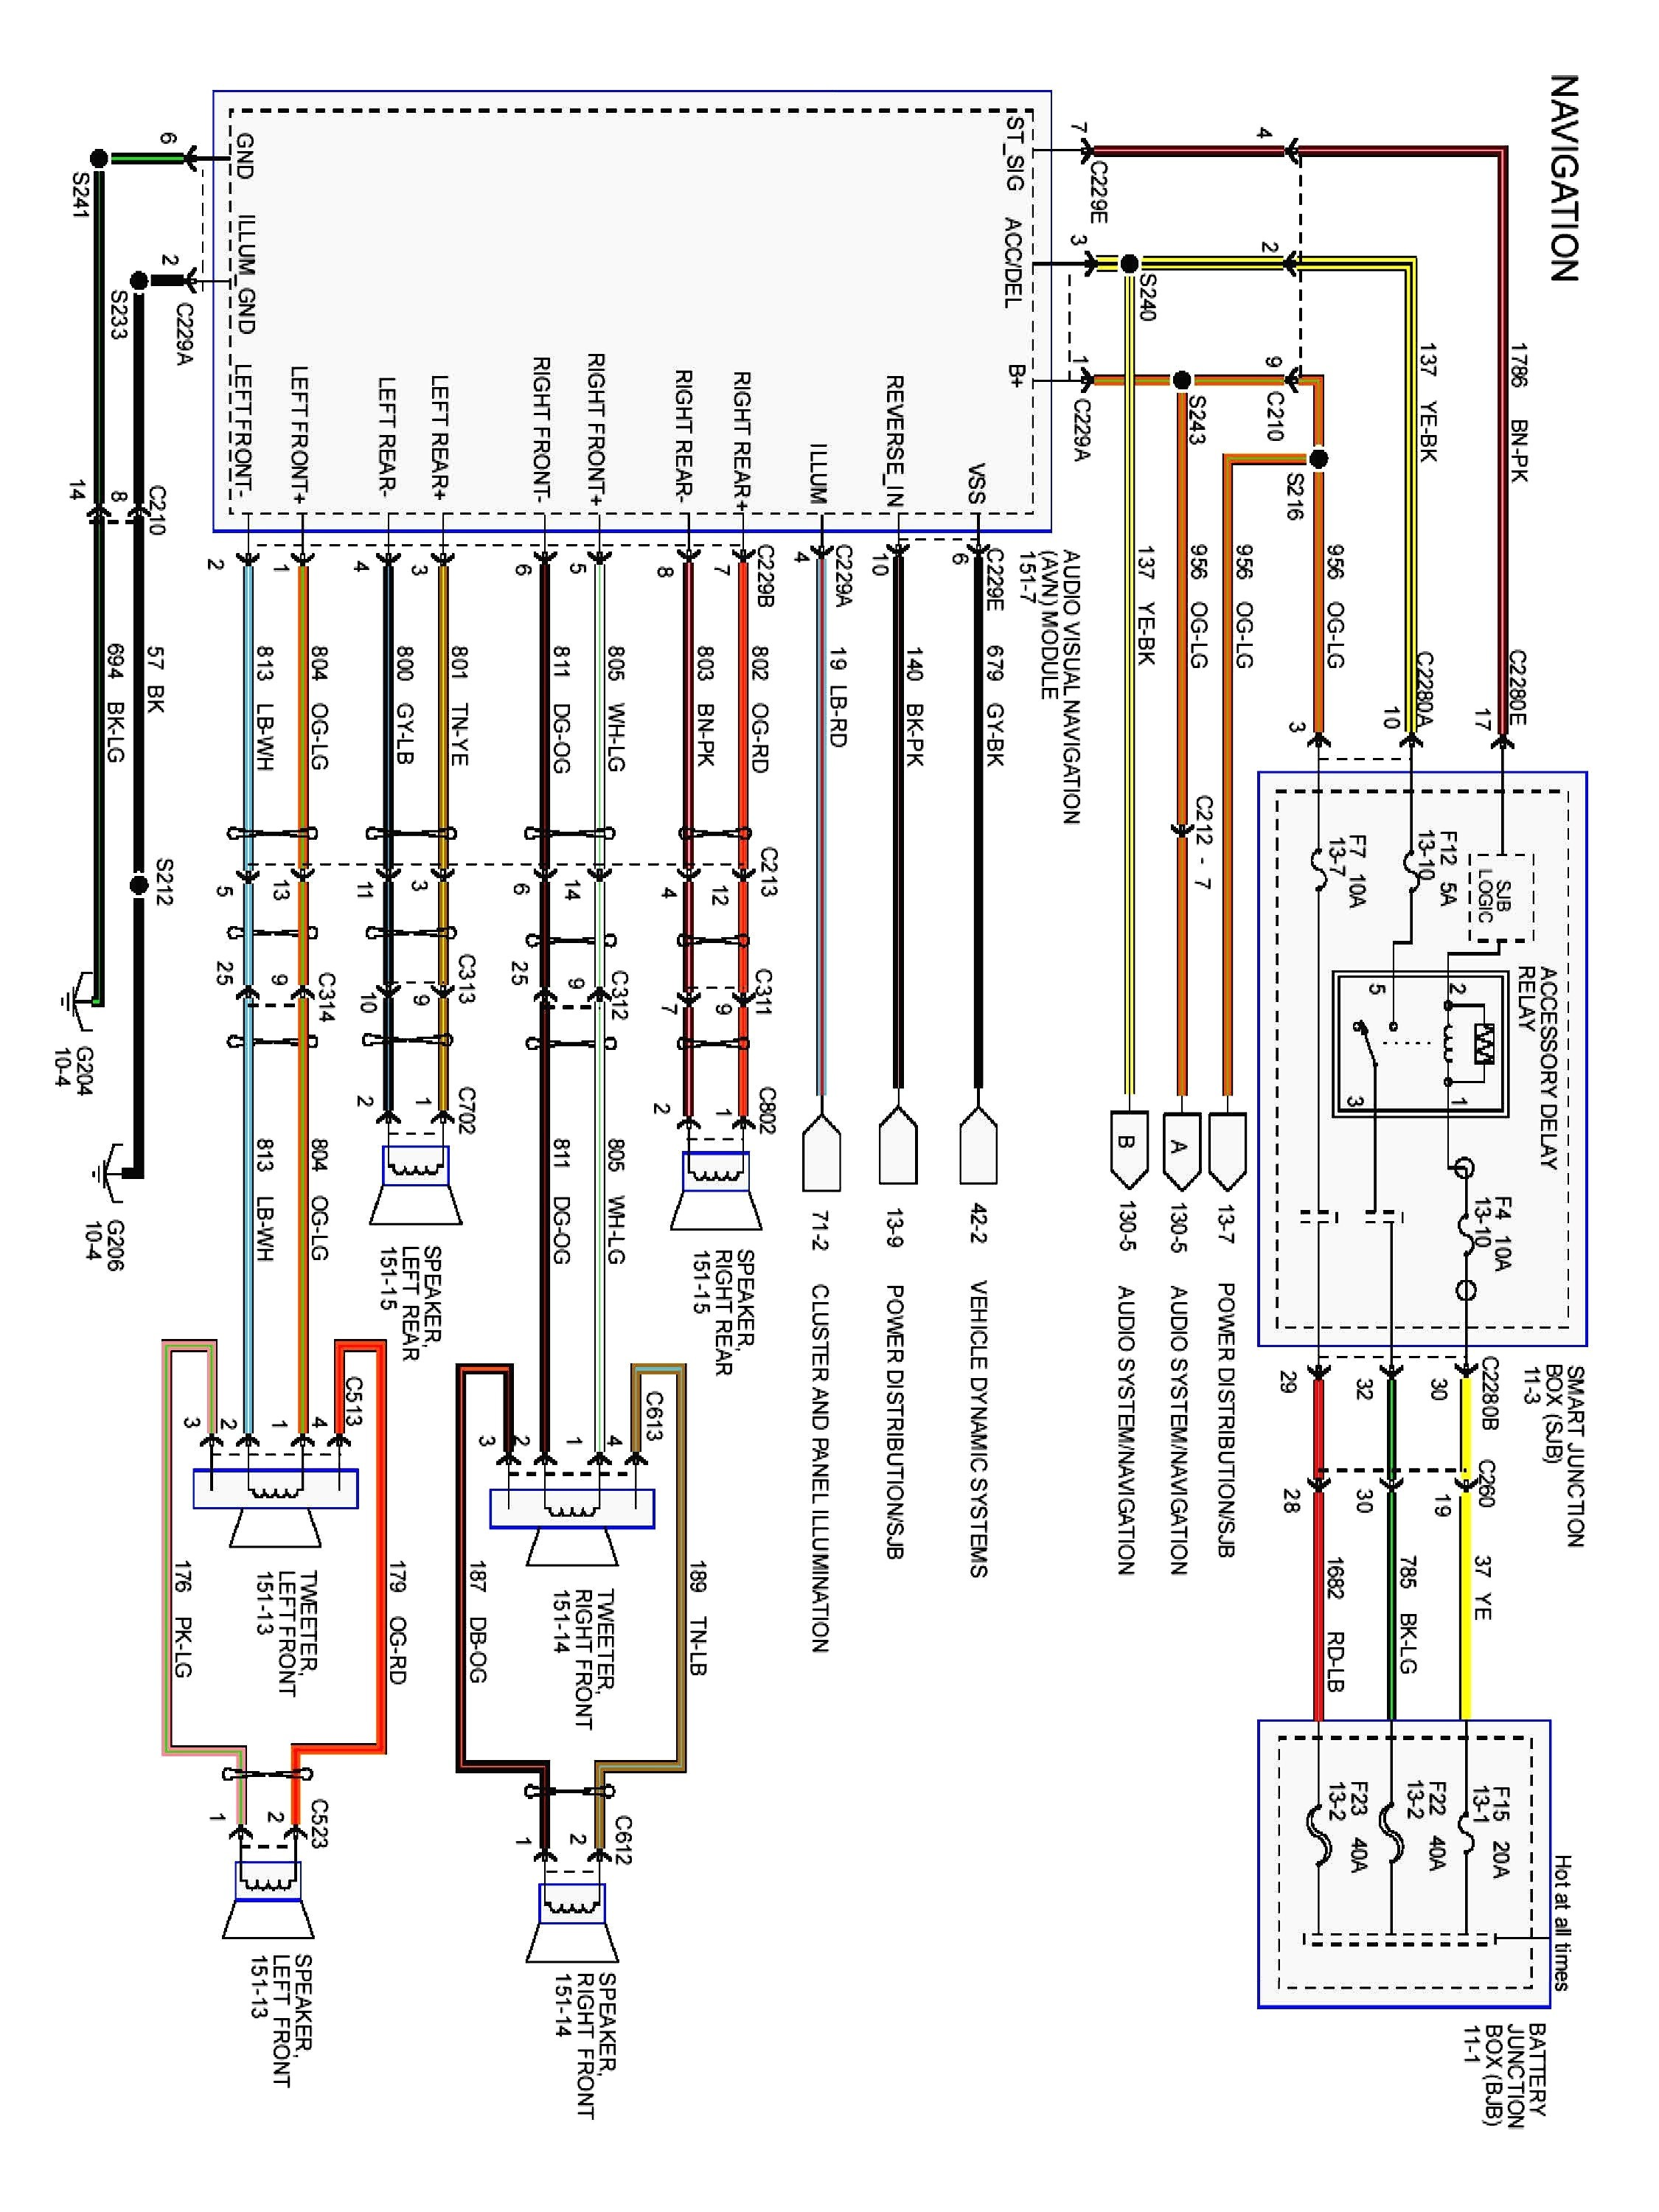 F250 Headlight Wiring Diagram from detoxicrecenze.com